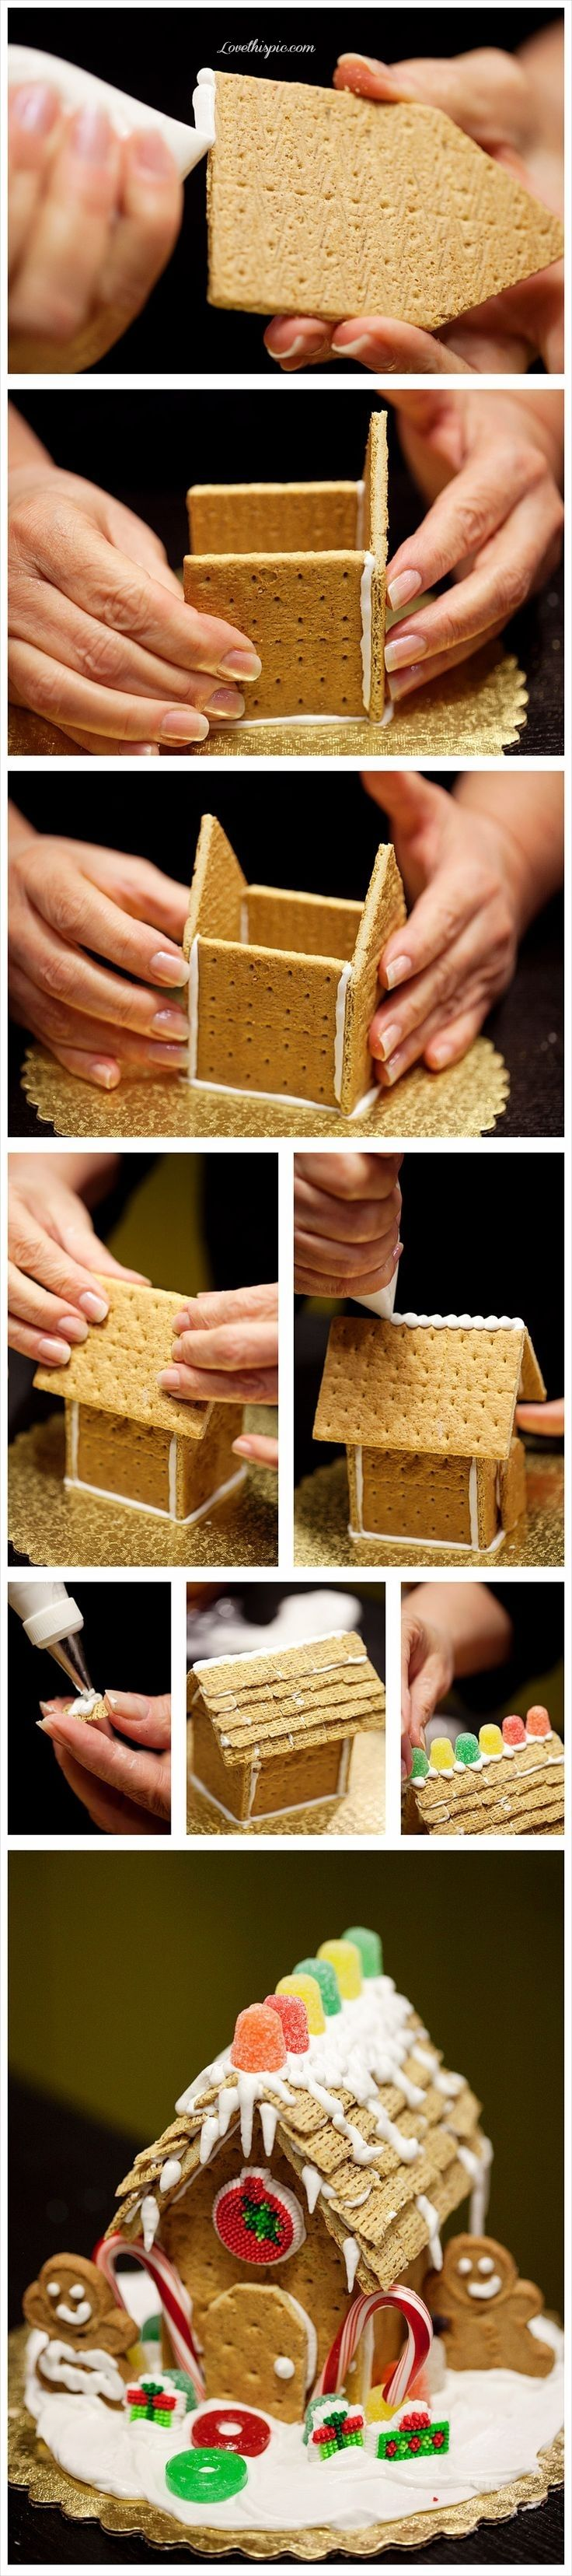 DIY Mini Gingerbread House Pictures, Photos, and Images for Facebook, Tumblr, Pinterest, and Twitter